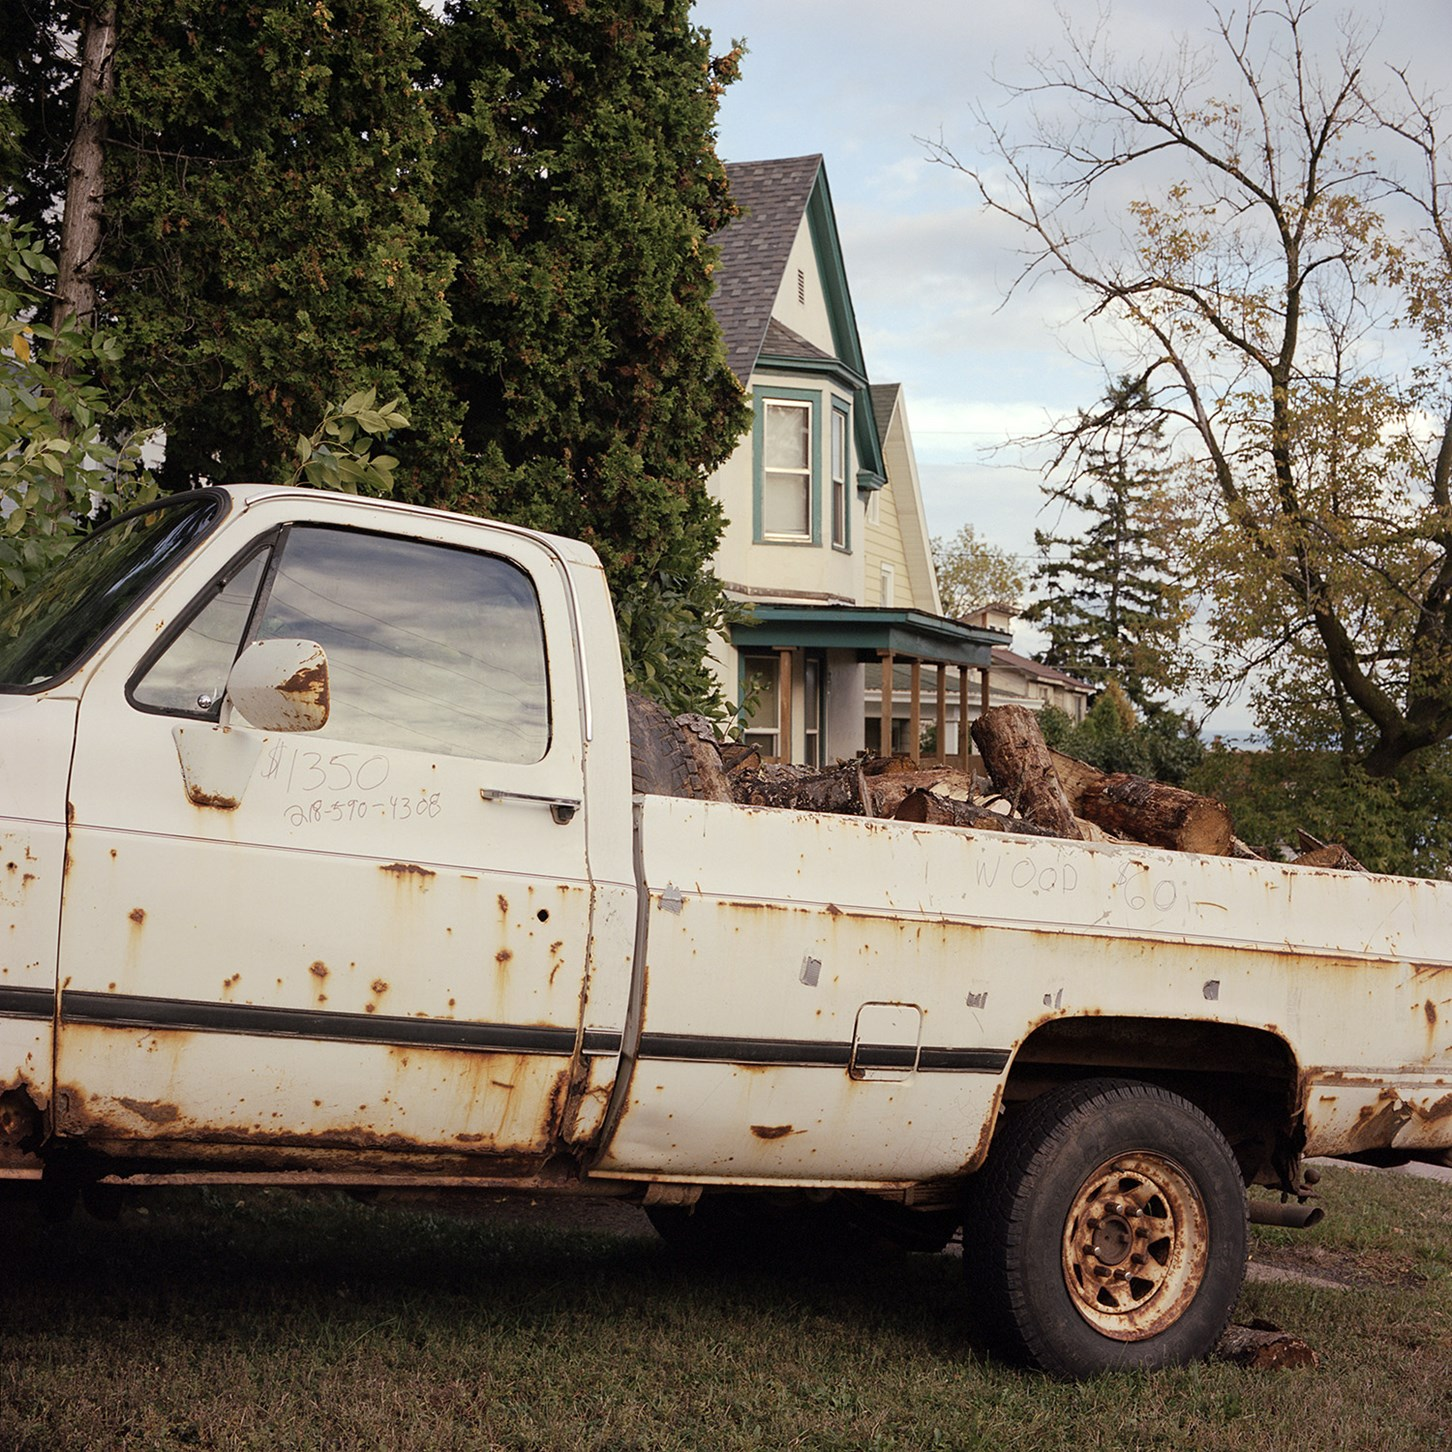 Rusty Truck For Sale, Duluth, Minnesota, August 2013